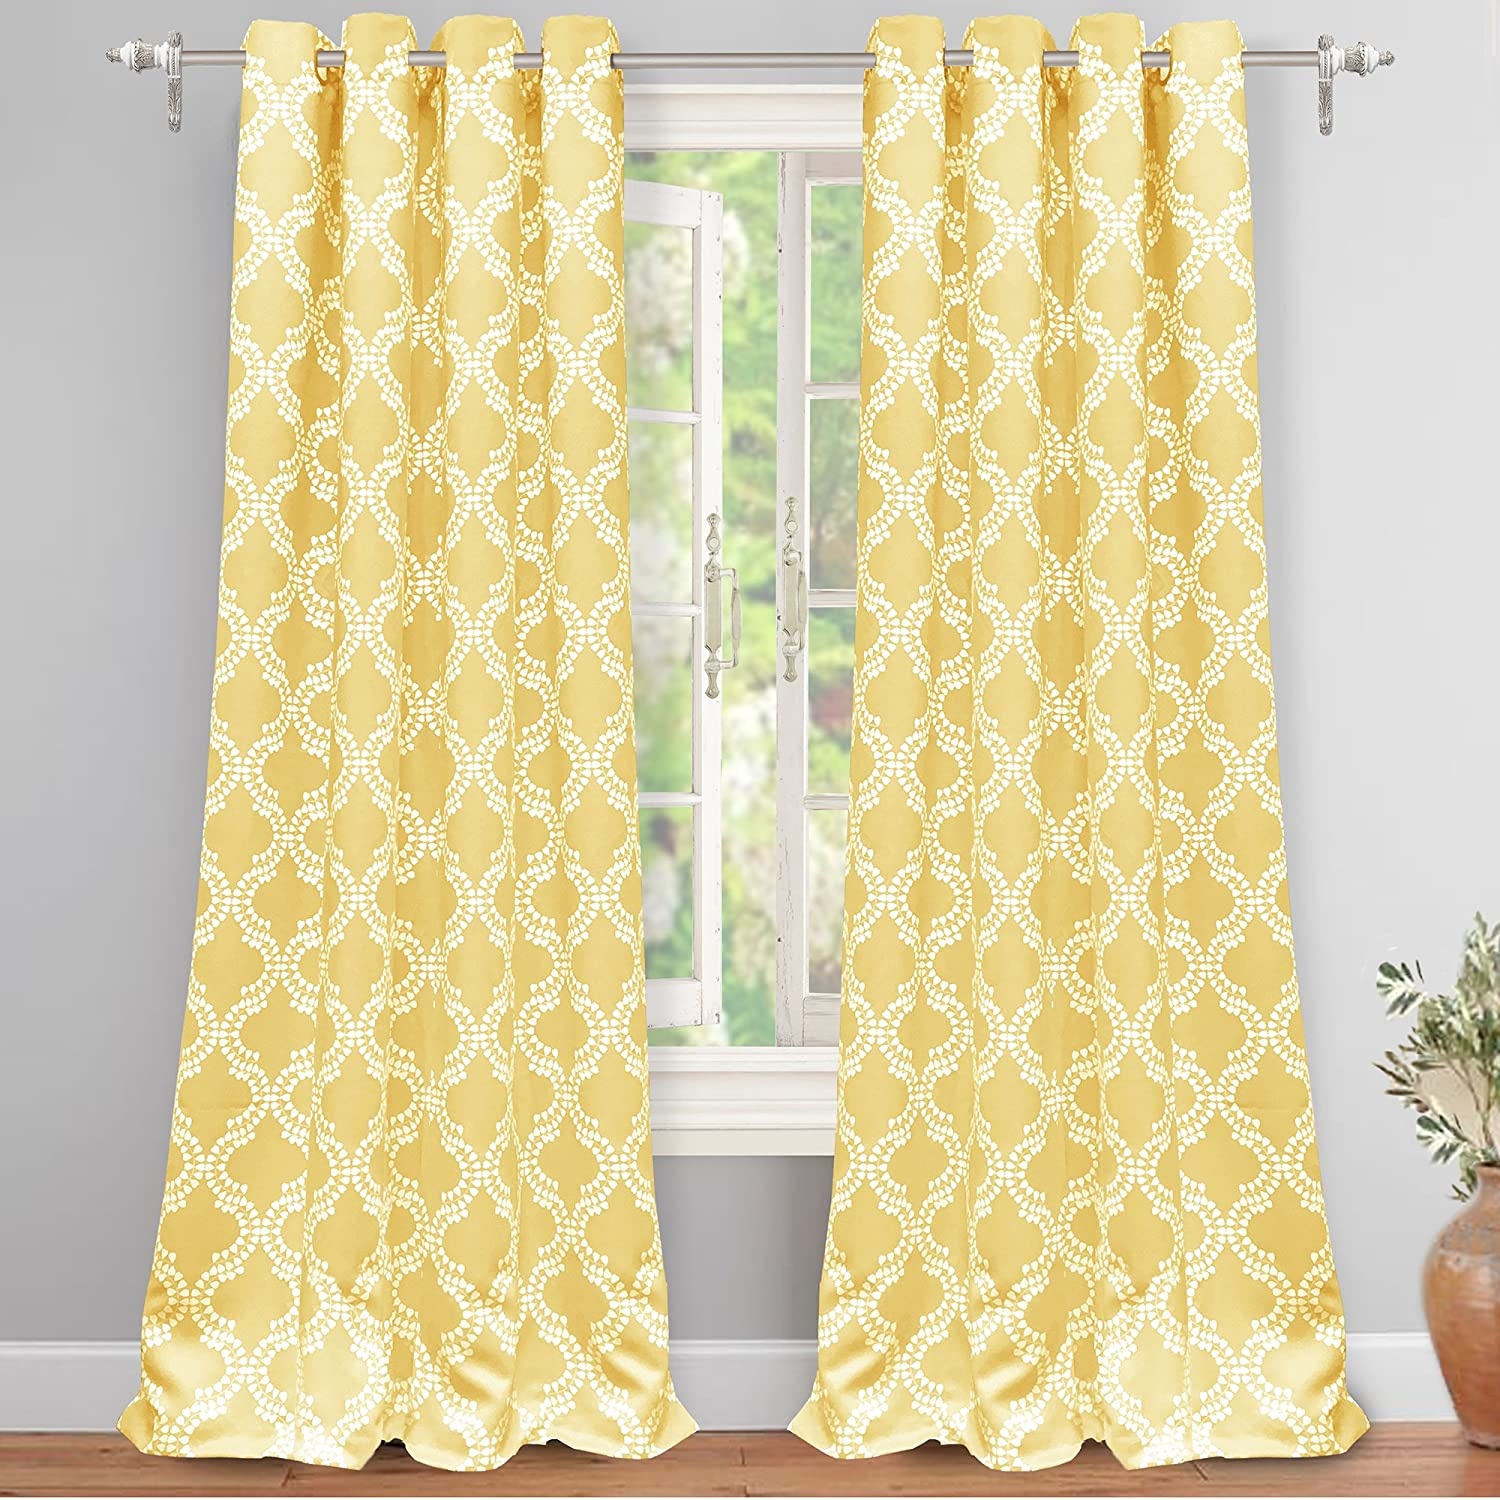 DriftAway Drift Away Julianna Thermal Insulated Blackout/Room Darkening Grommet Unlined Window Curtains Yellow